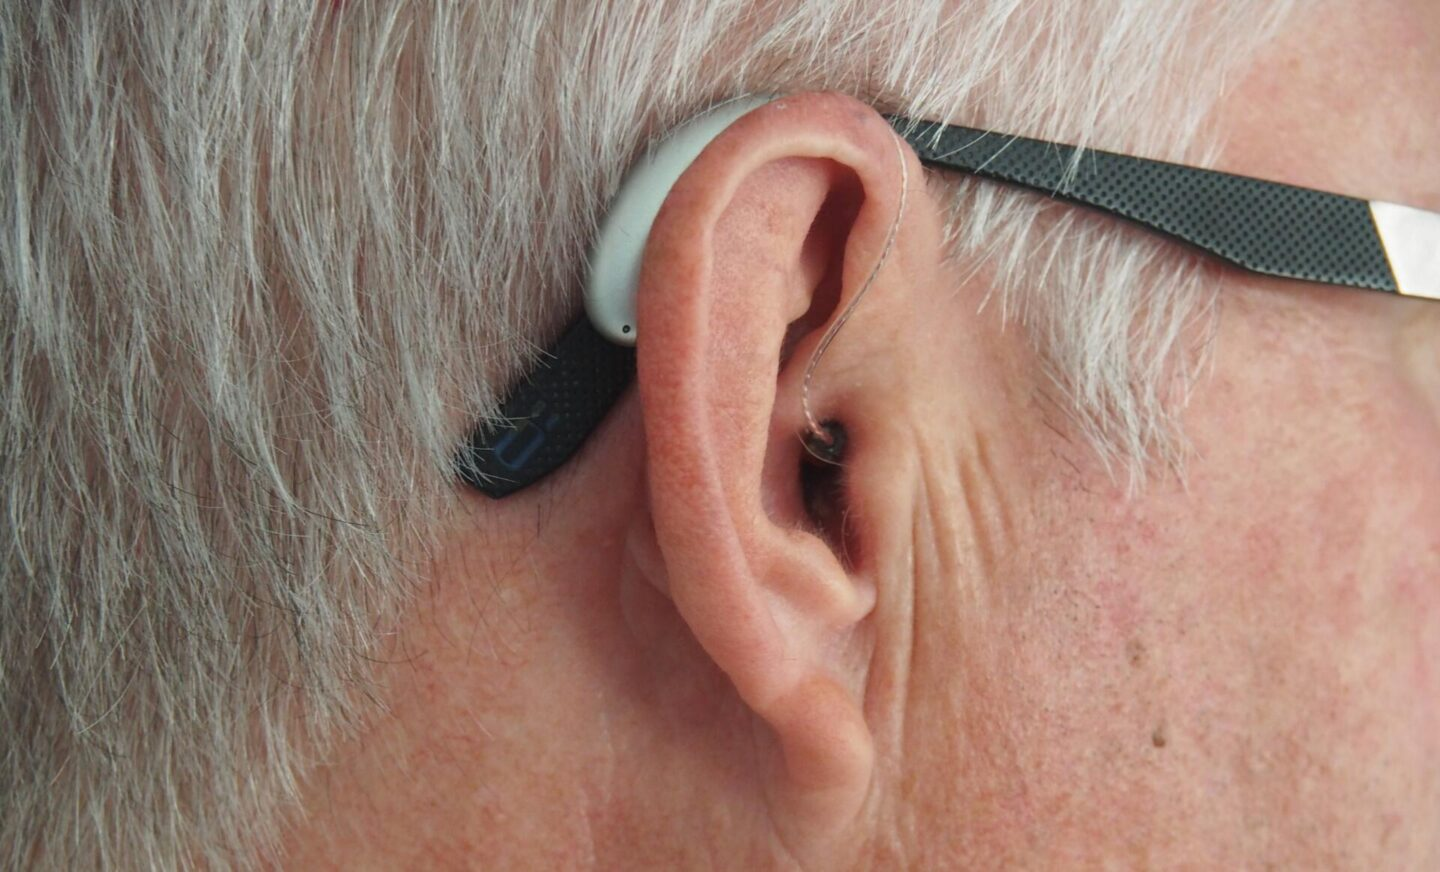 Surviving with hearing loss